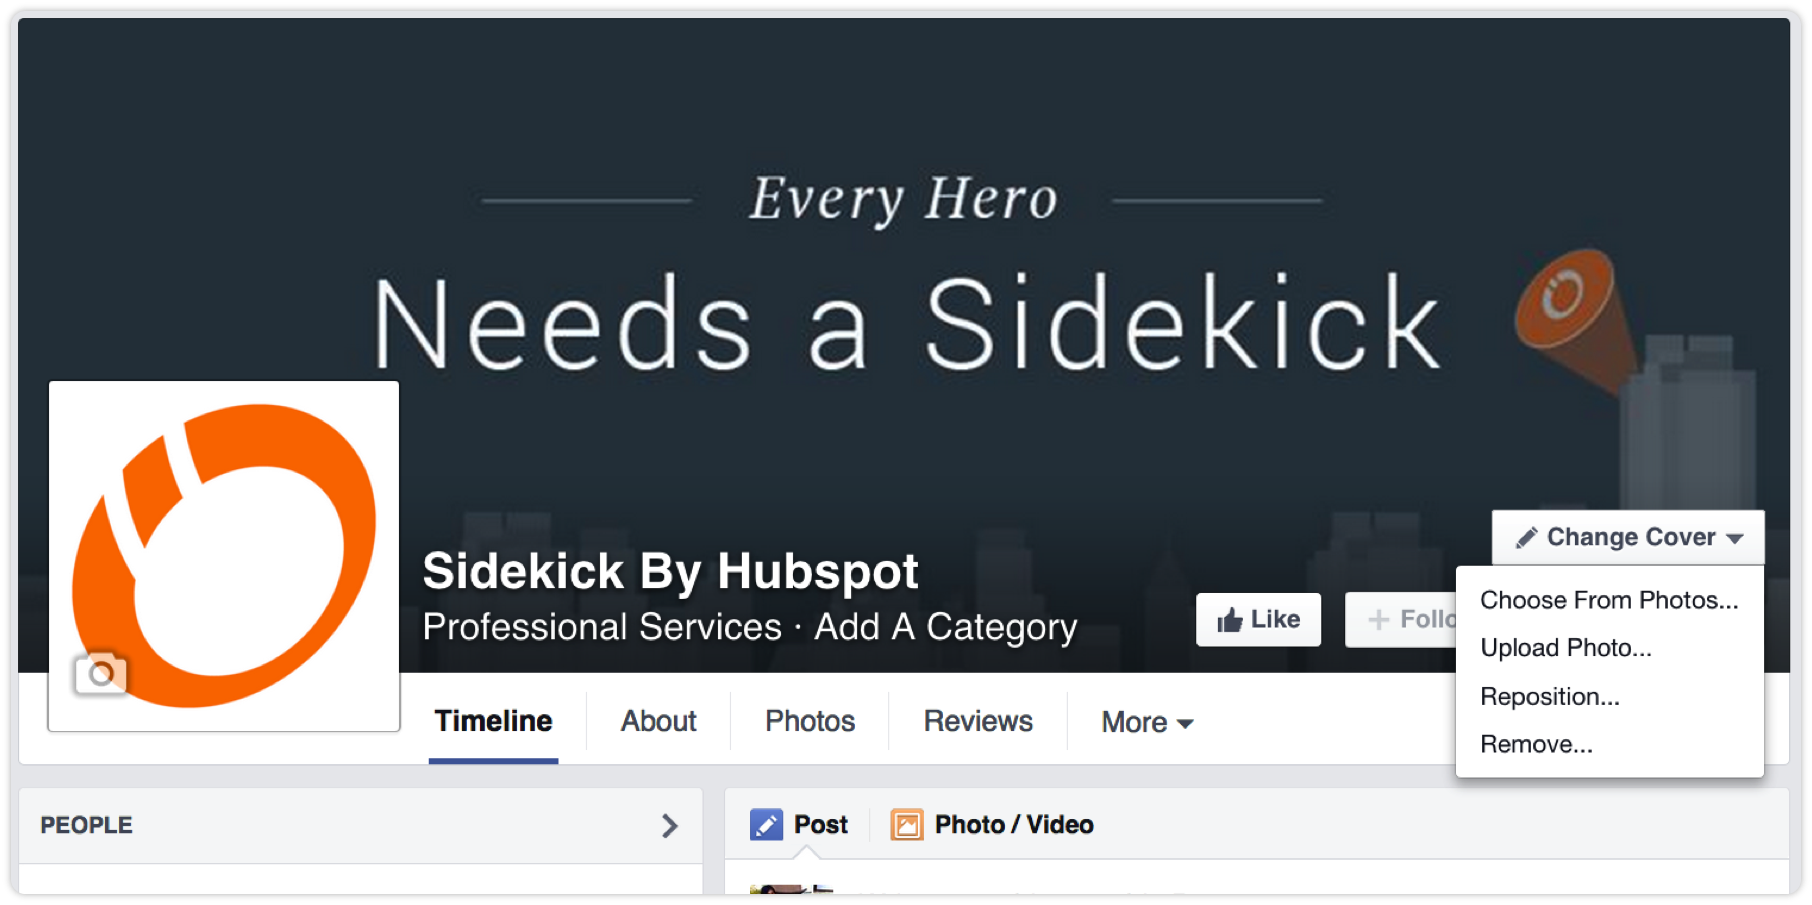 every-hero-needs-sidekick-by-hubspot-facebook-cover-photo